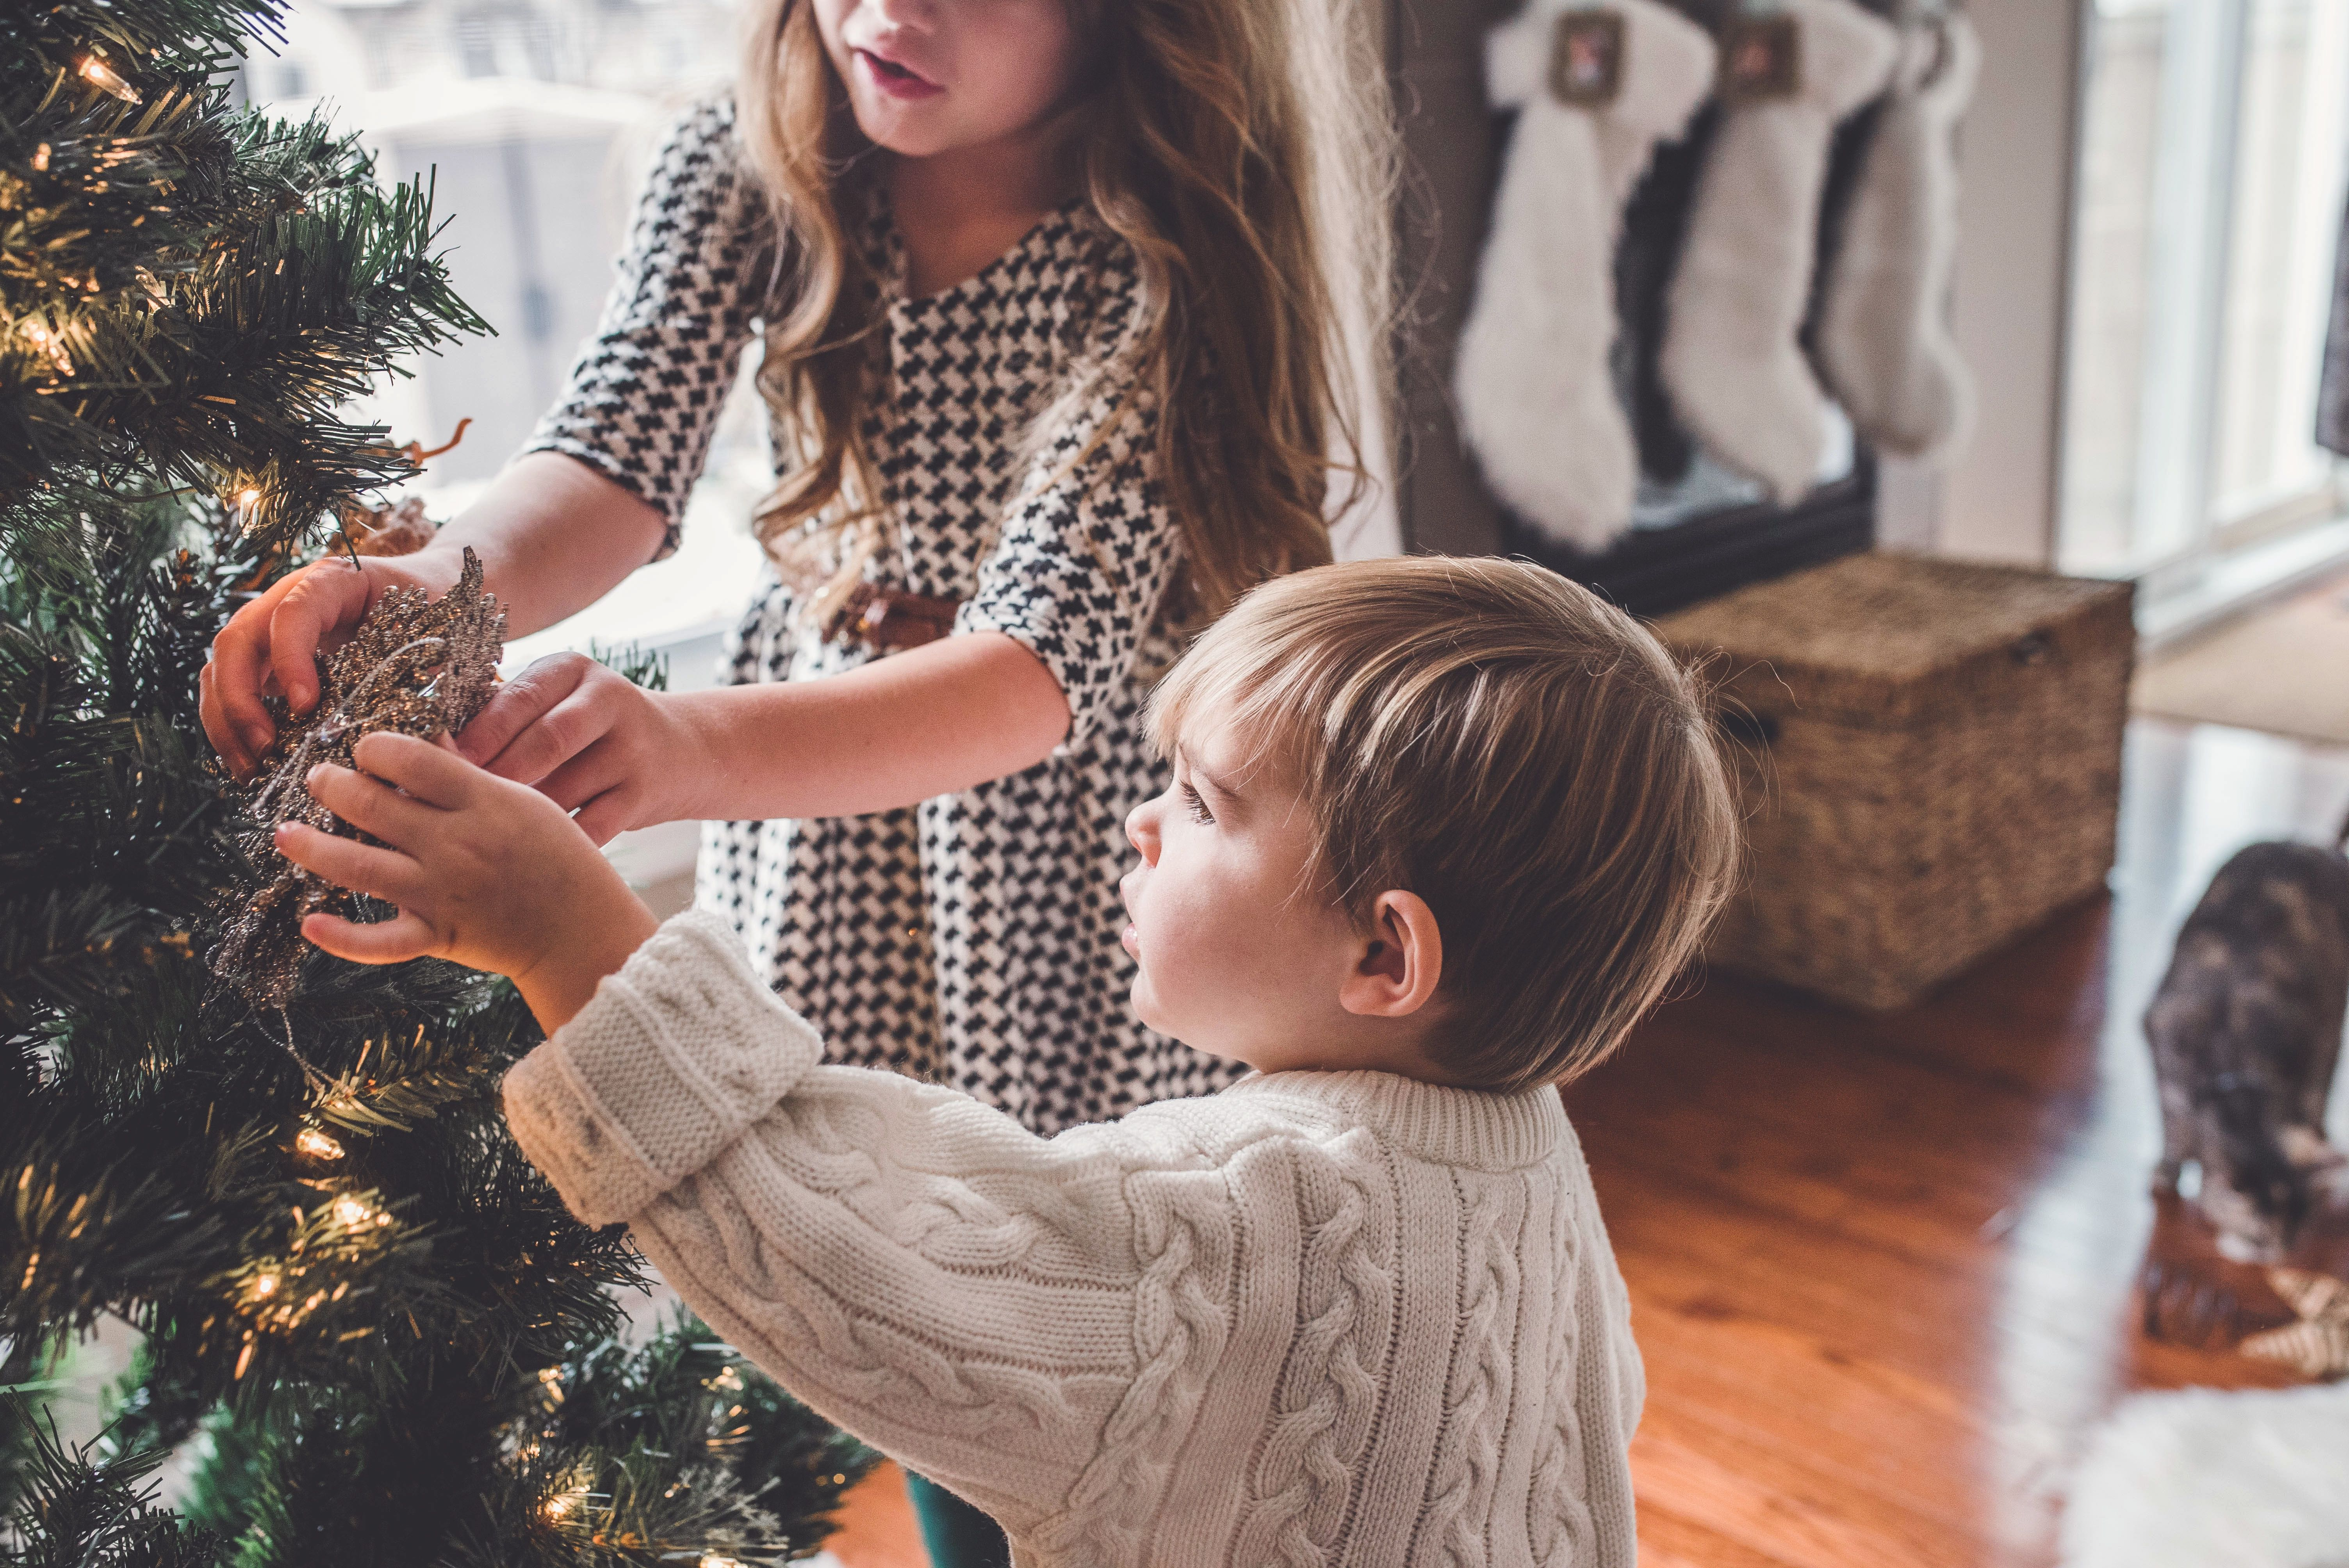 3 Reasons Why Christmas Gifts Might NOT Be The Best Thing for Your Kids